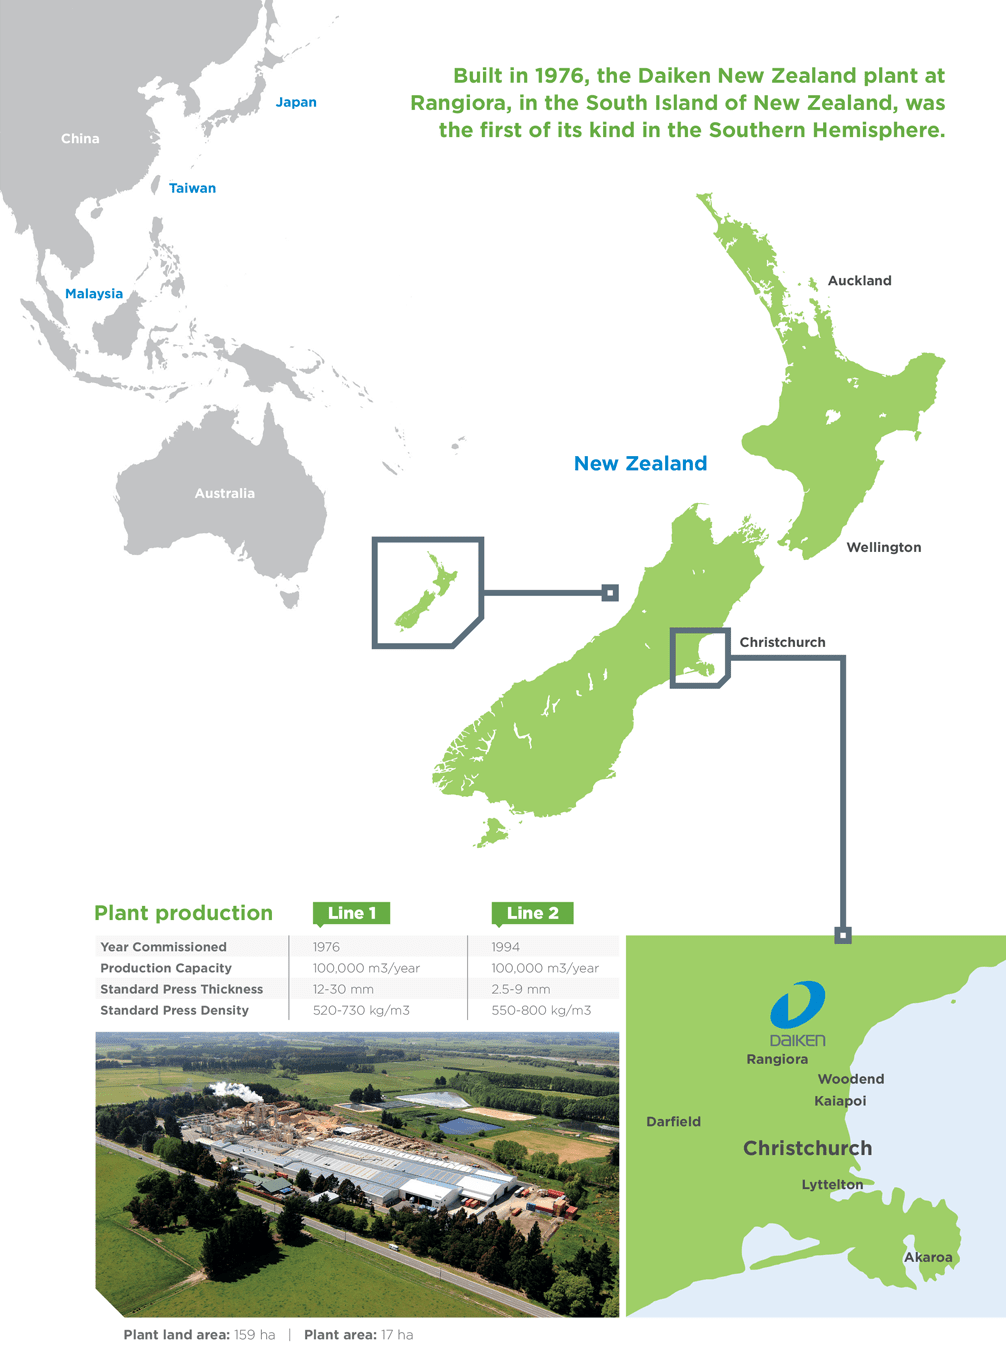 Built in 1976, the Daiken New Zealand plant at Rangiora, in the South Island of New Zealand, was the first of its kind in the Southern Hemisphere